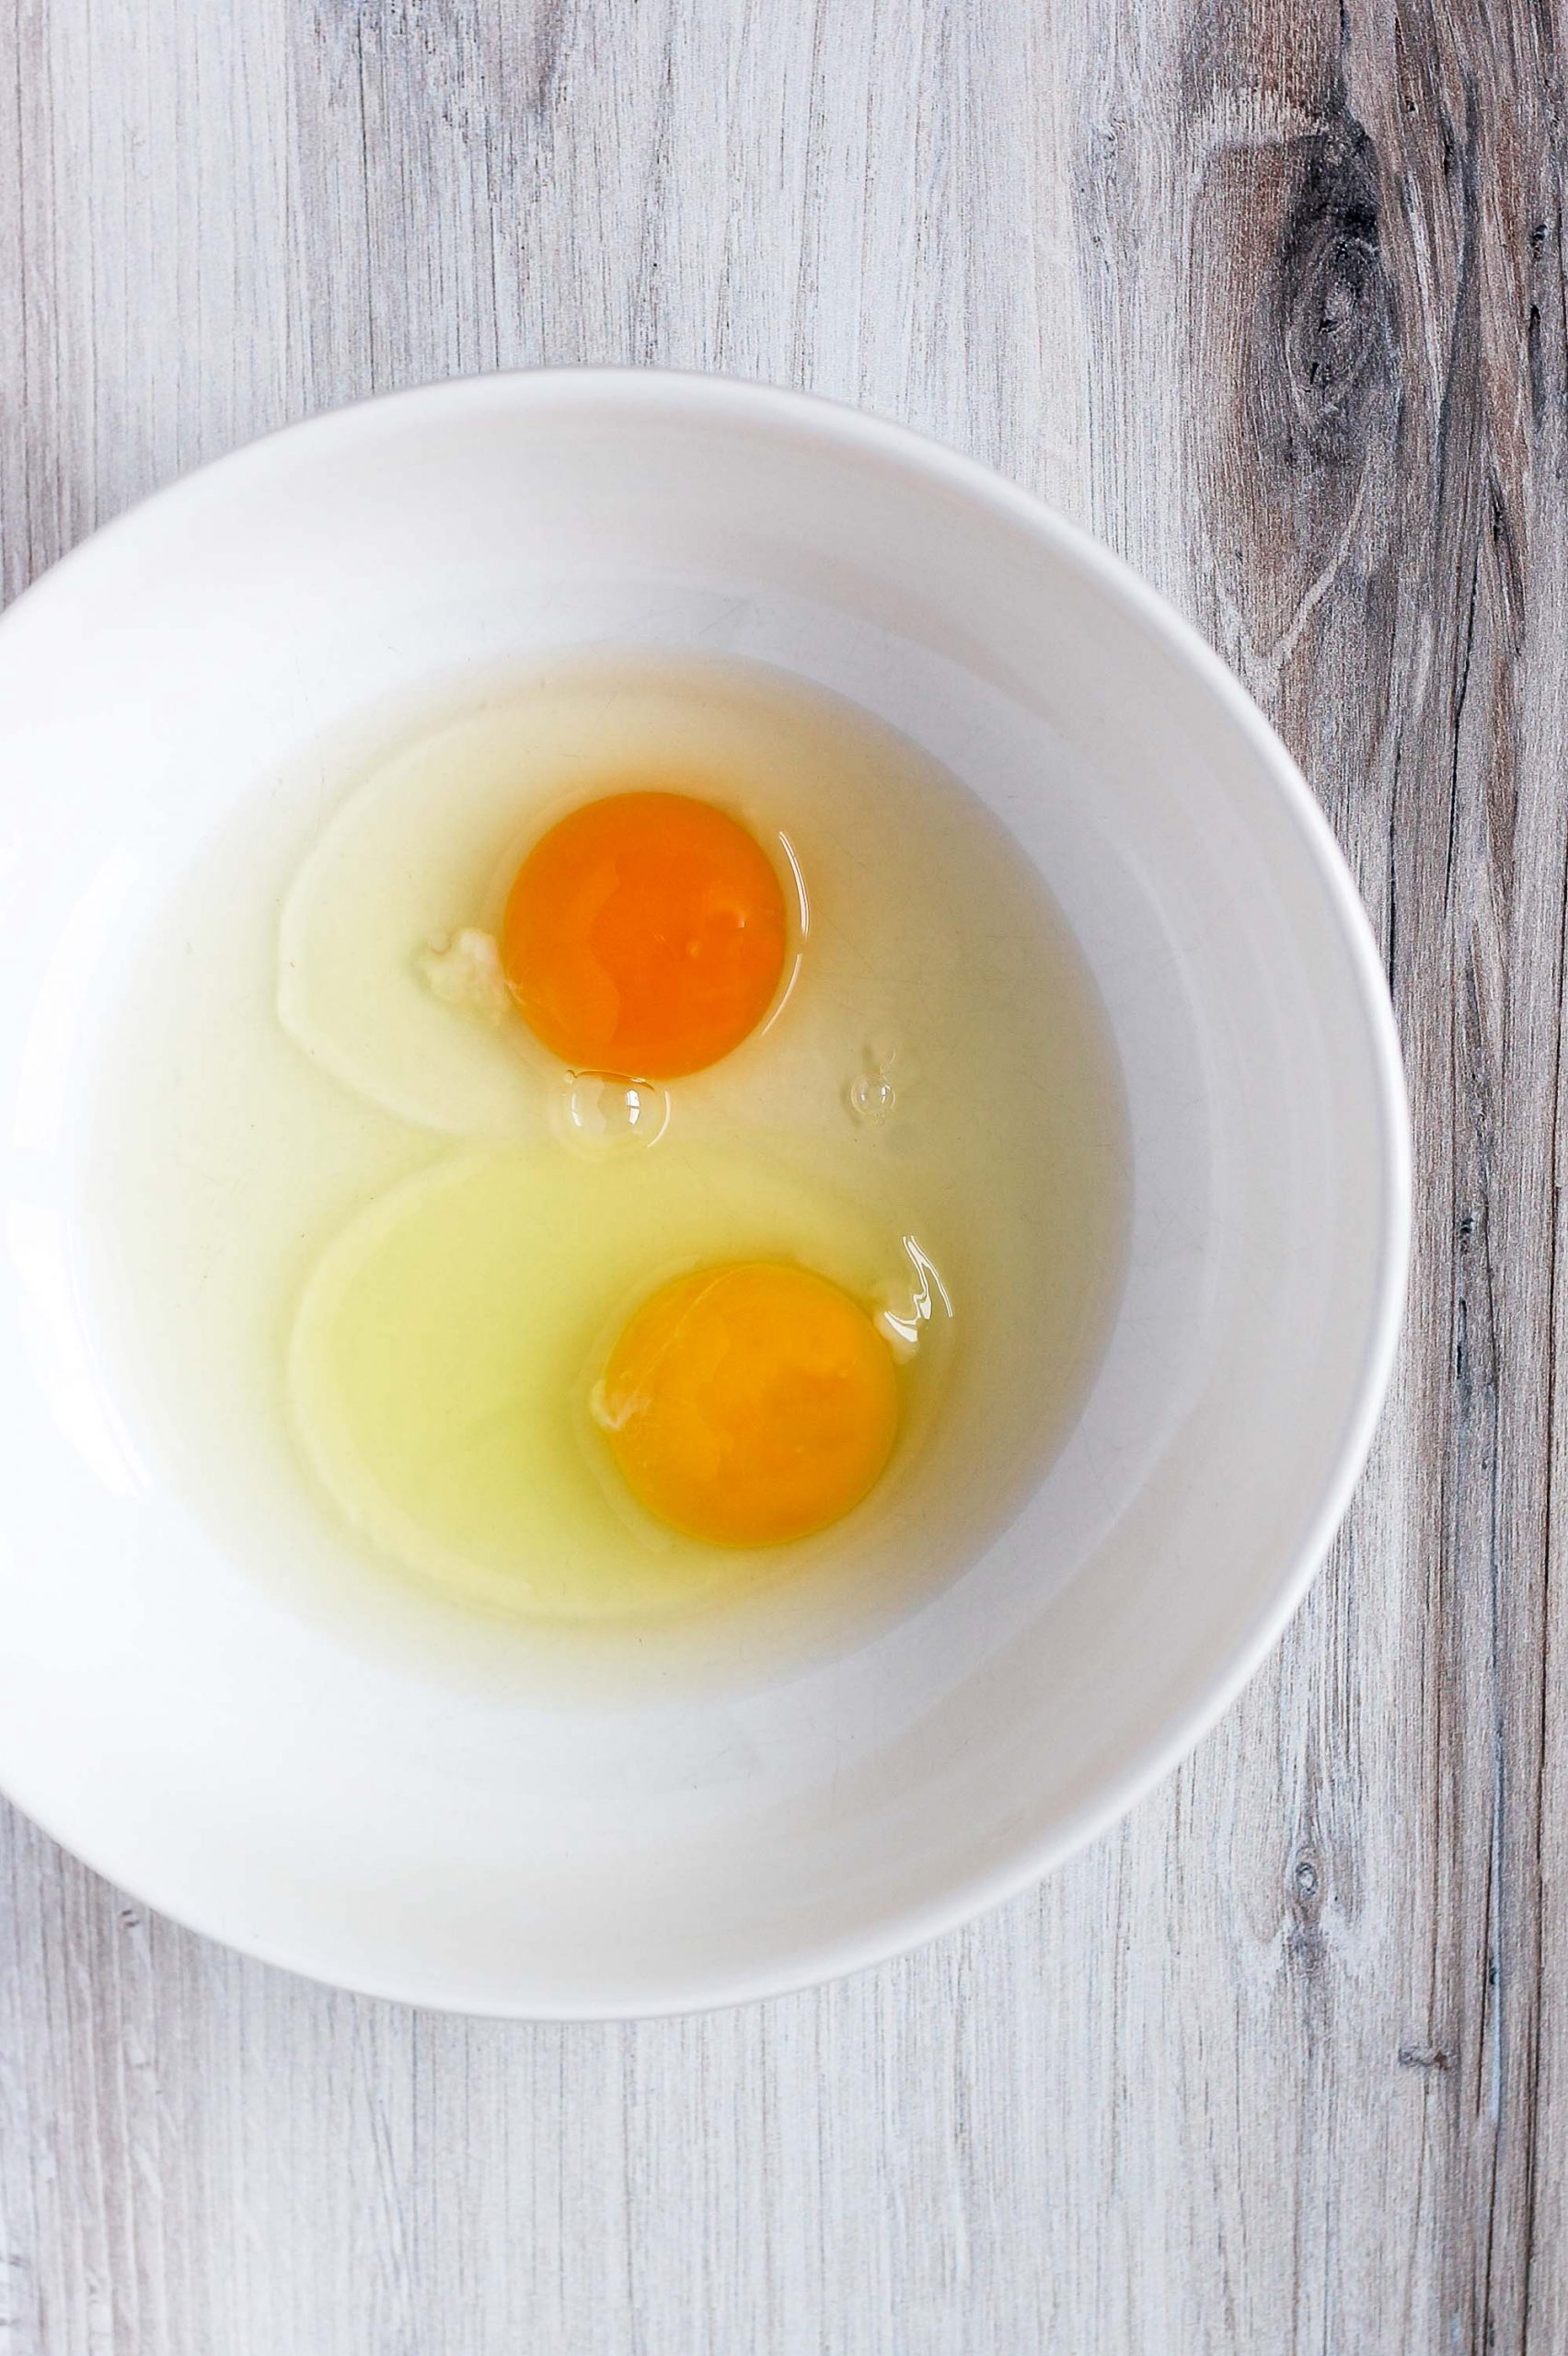 2 cracked eggs in a white bowl - one yolk is brighter orange